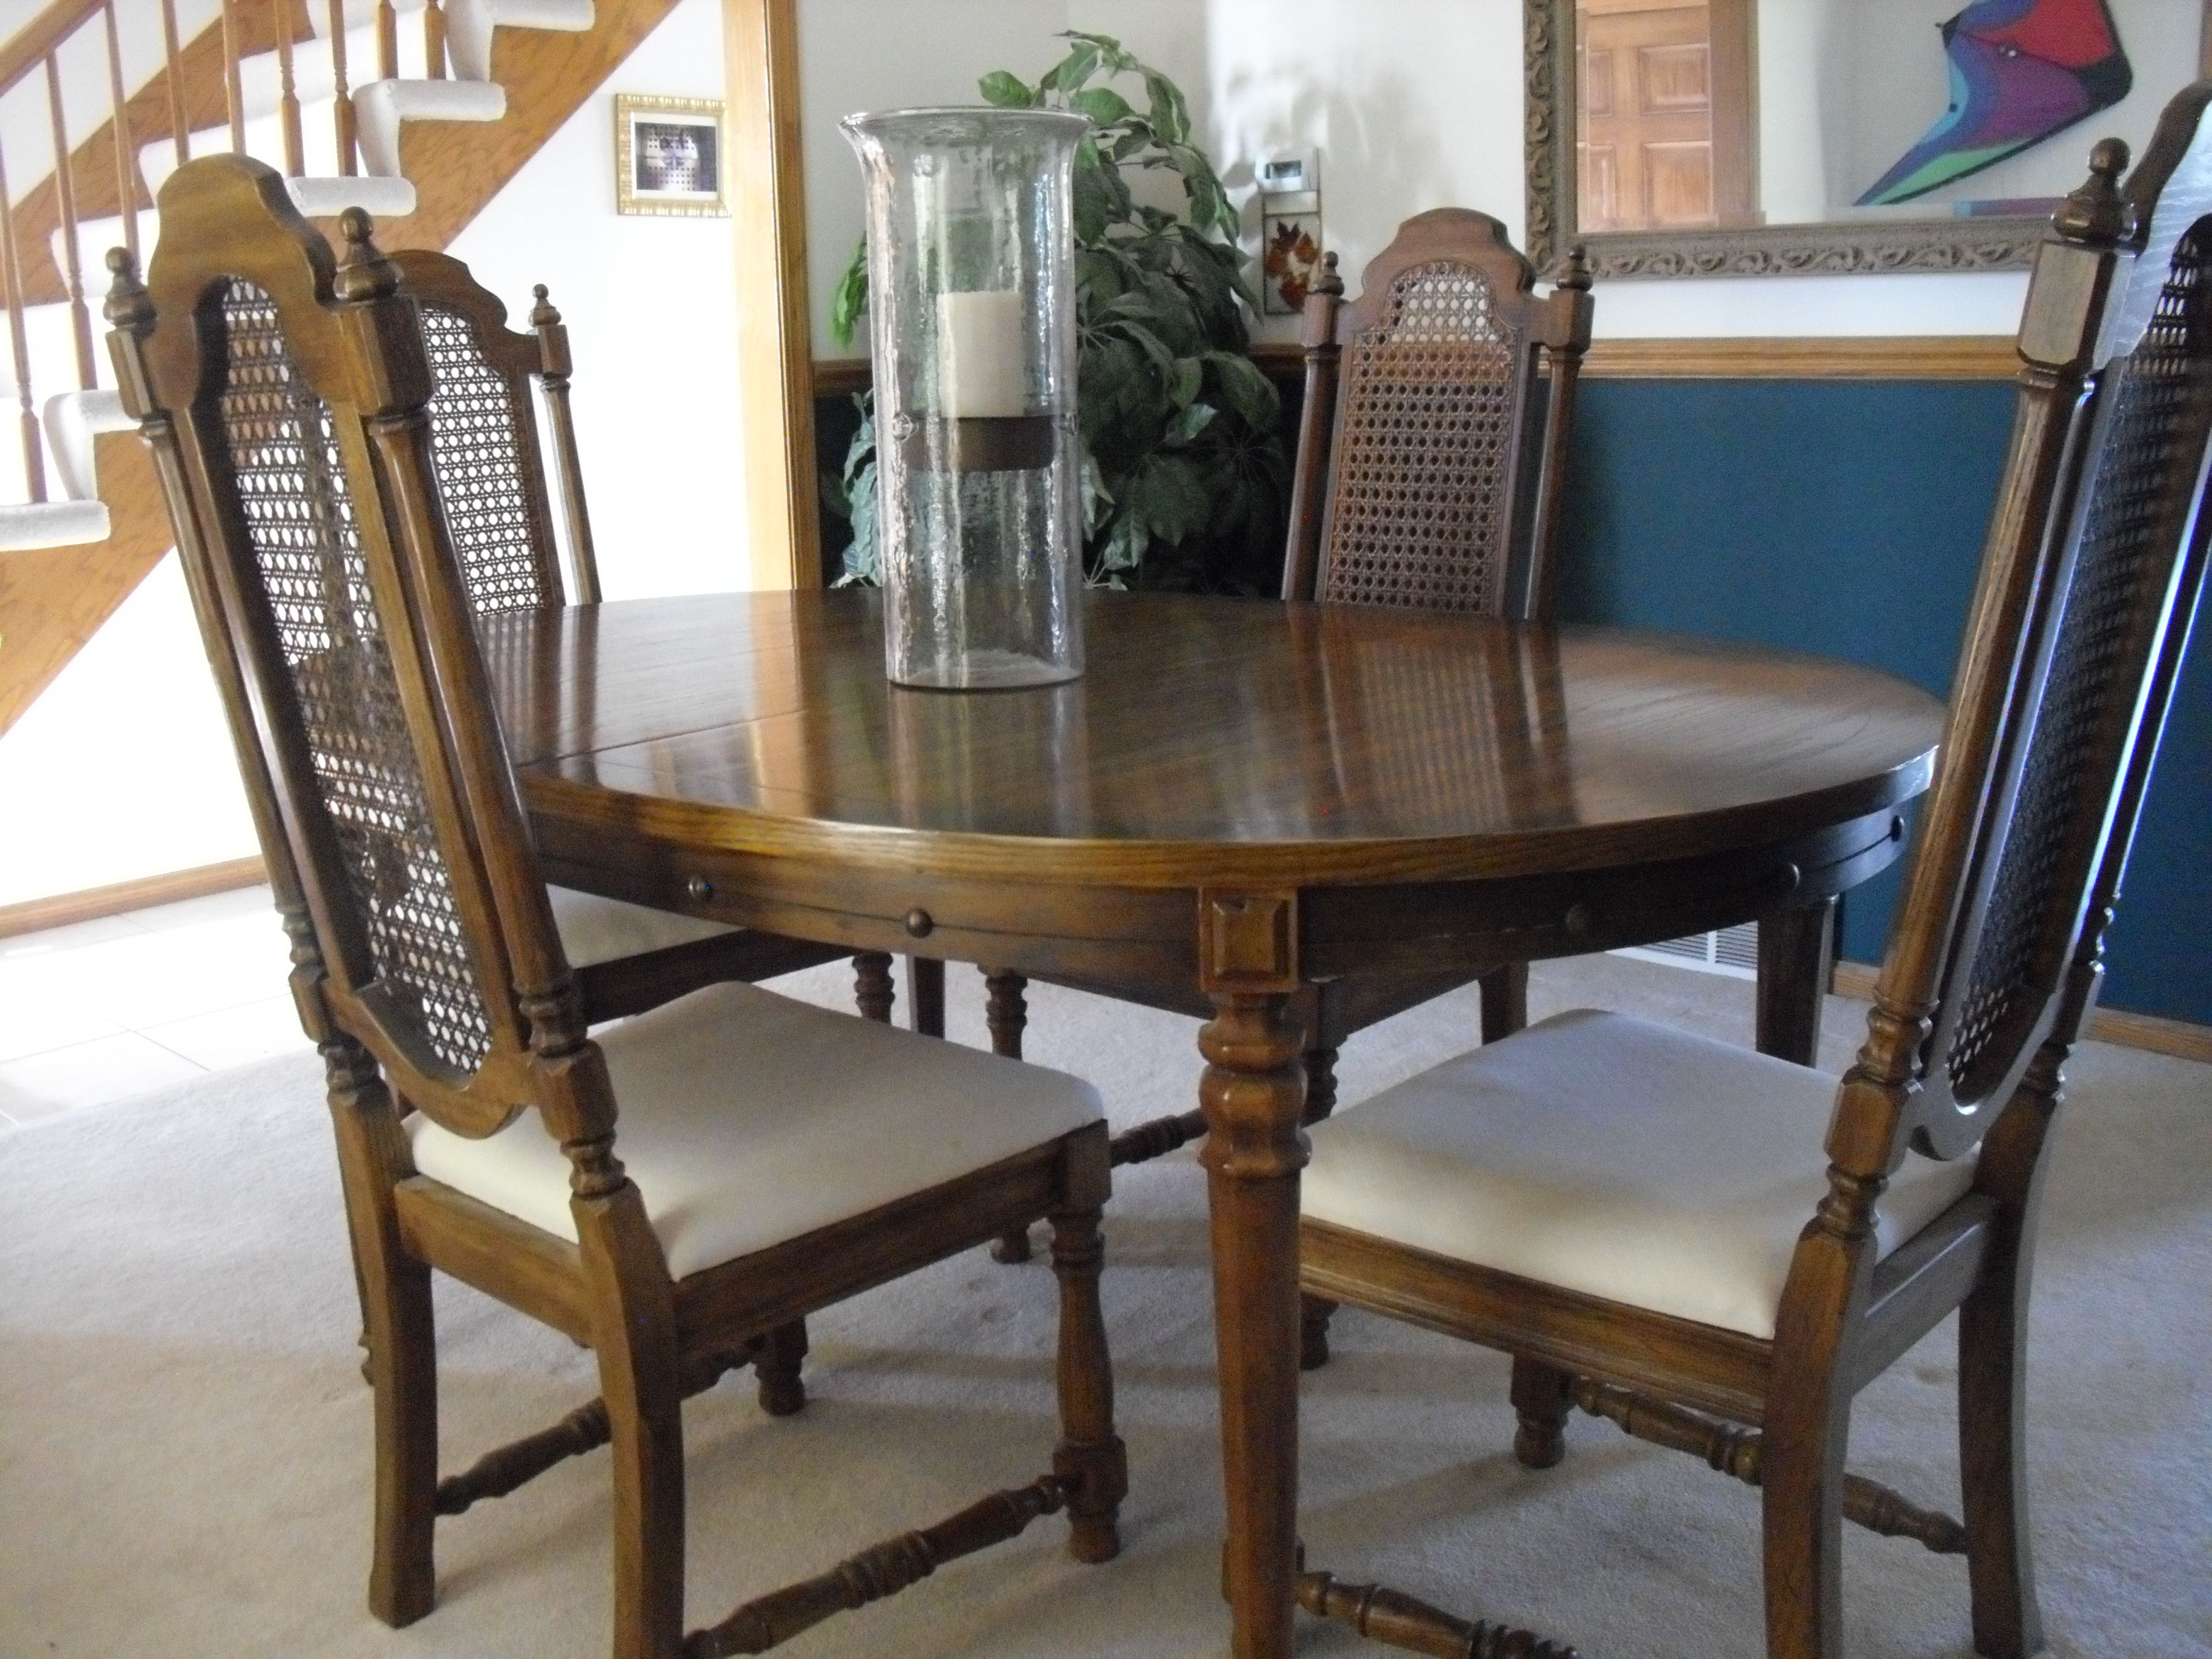 Dining Room Table and 6 Chairs - Excellent Condition! image 1